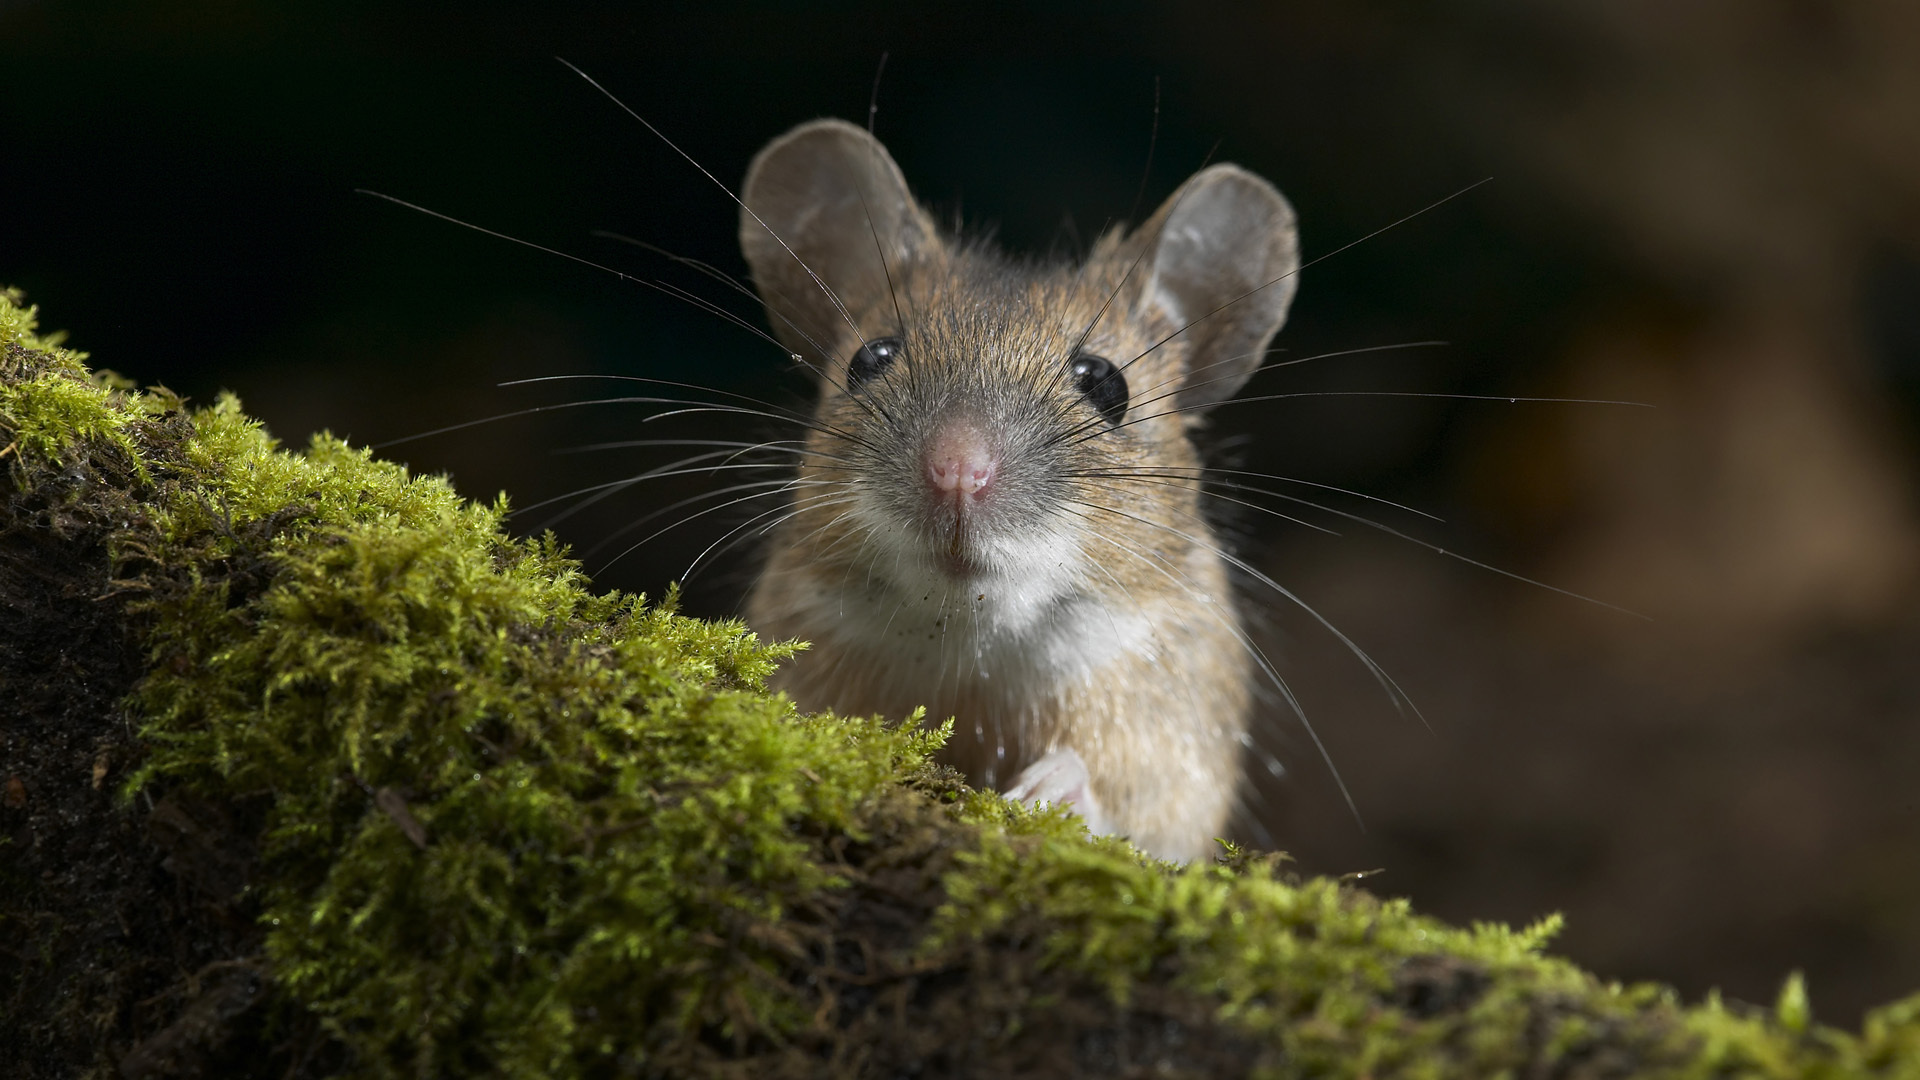 close up photo of rodent on grass